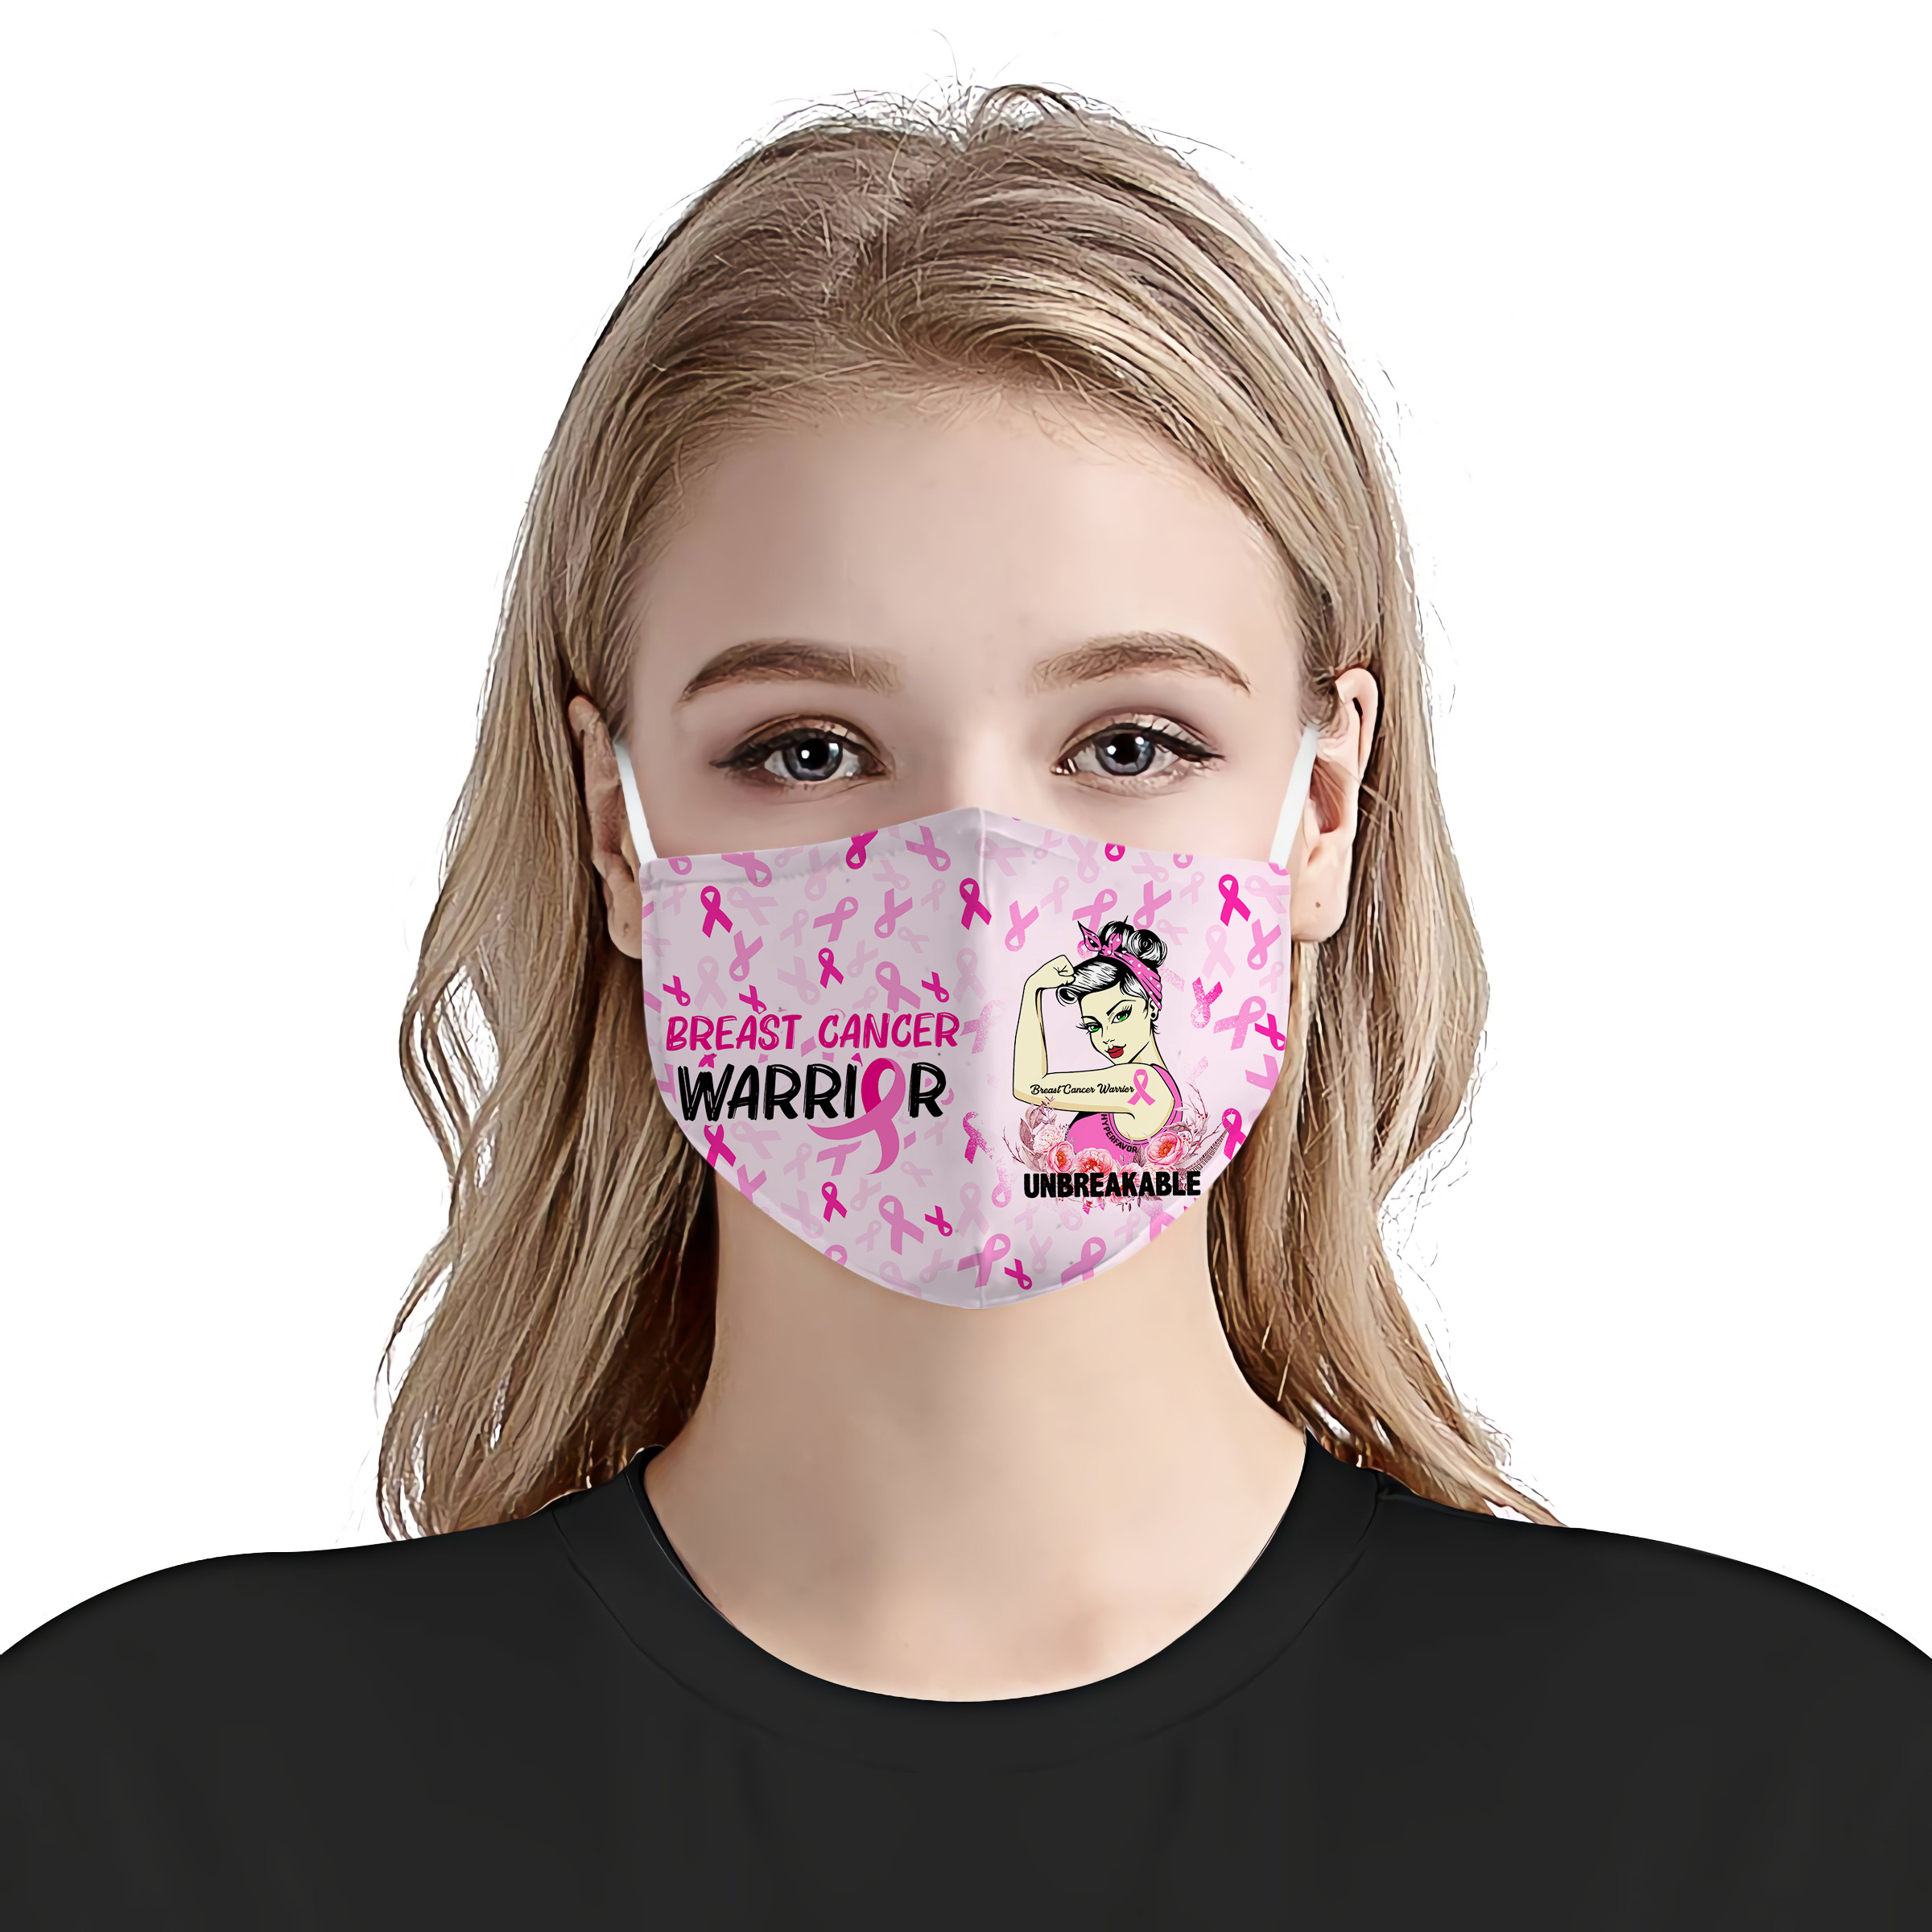 Breast Cancer Awareness Warrior Unbreakable Face Mask Robinplacefabrics